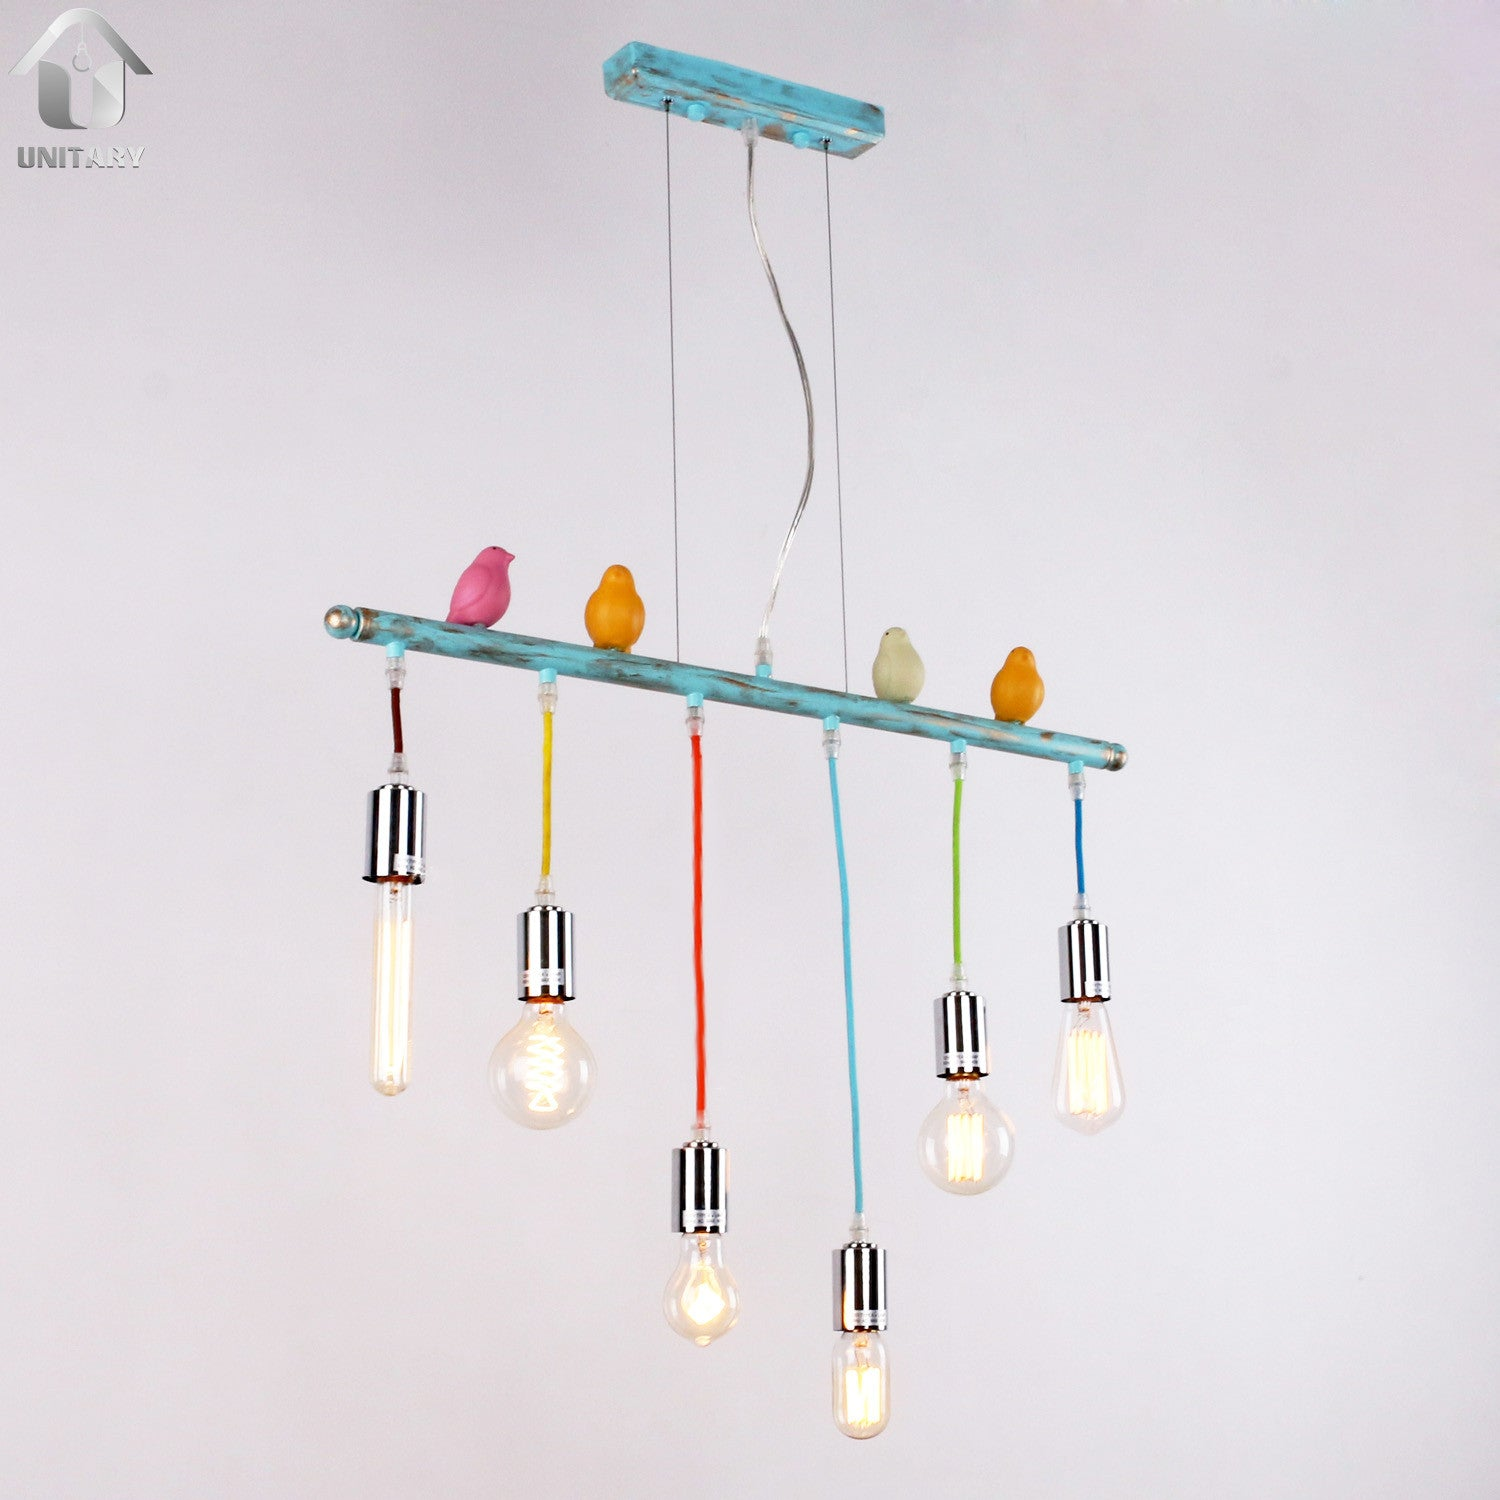 Unitary Cute Bird Ceiling Pendant Light 6x40w